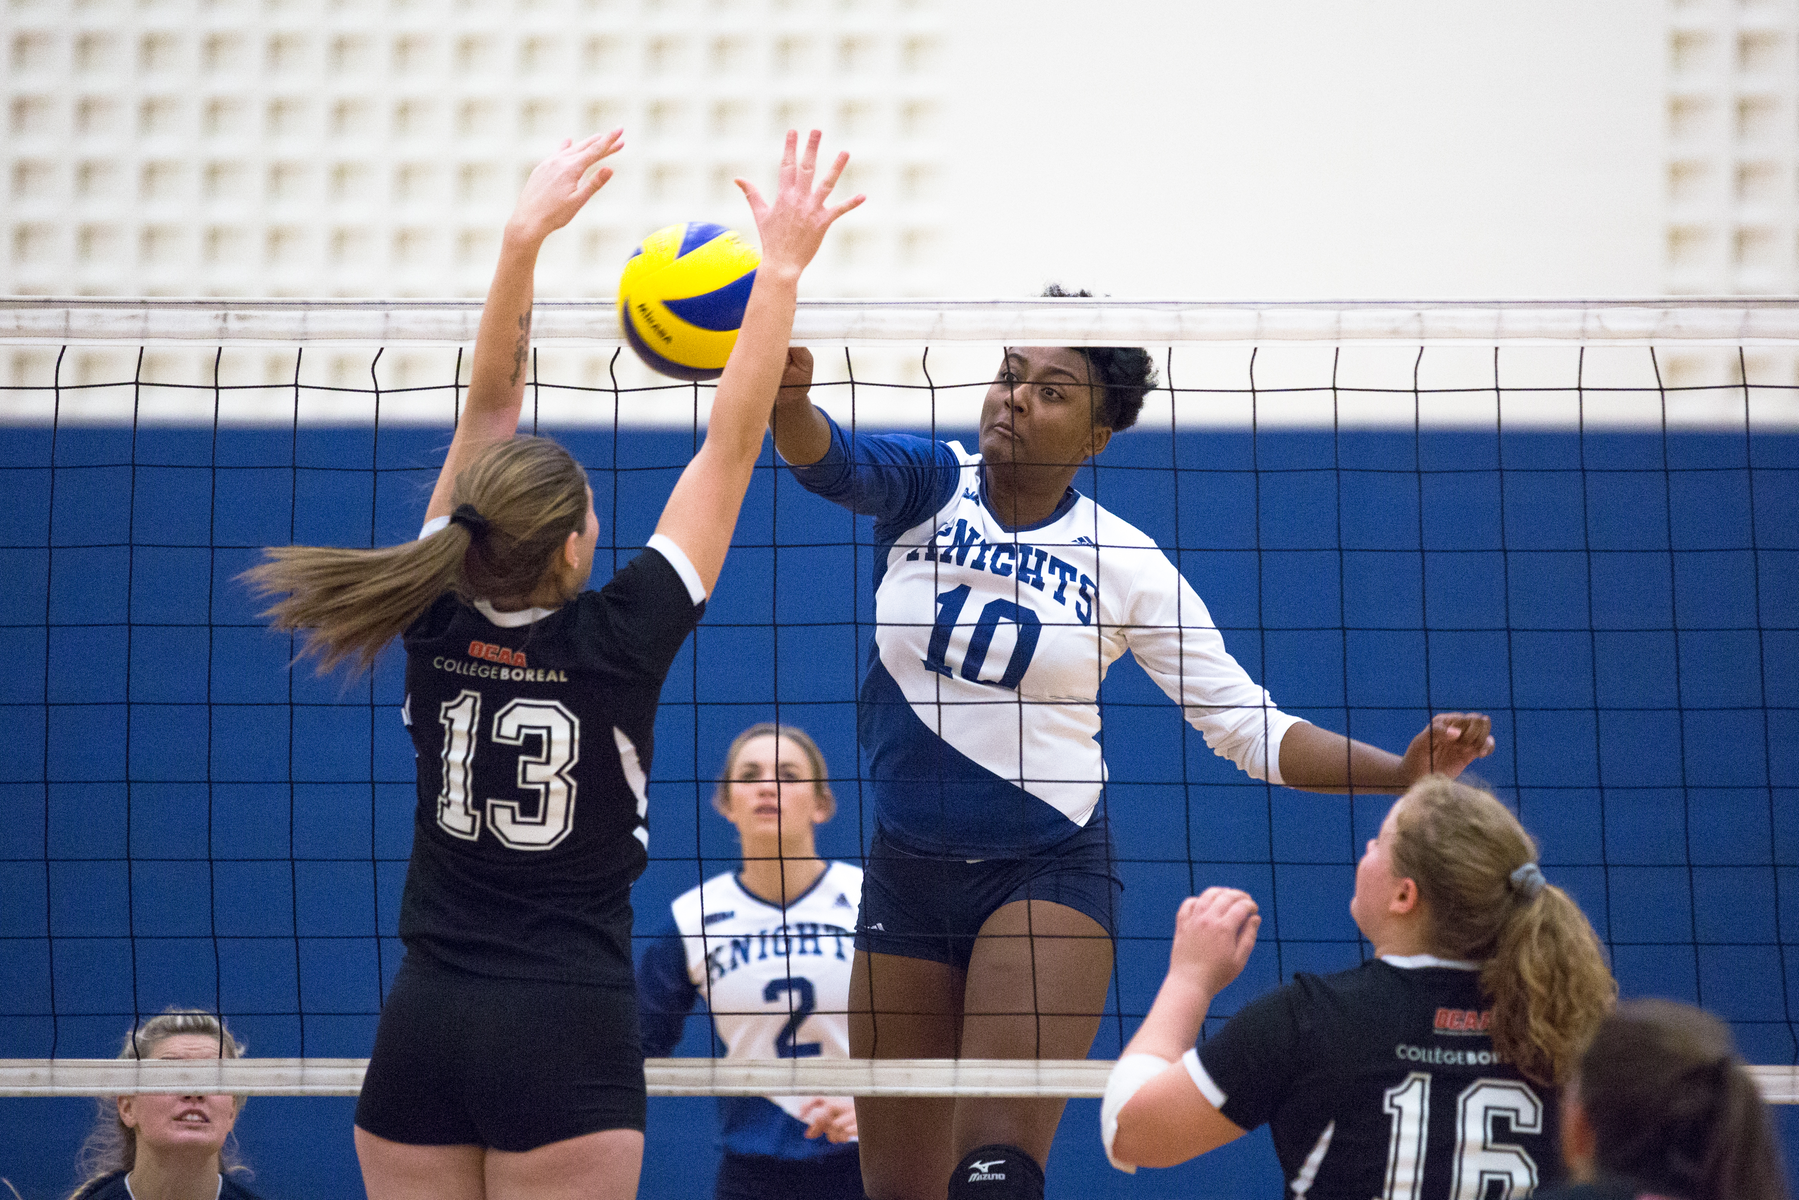 PHOTOS: Knights Women's Volleyball v. Boreal